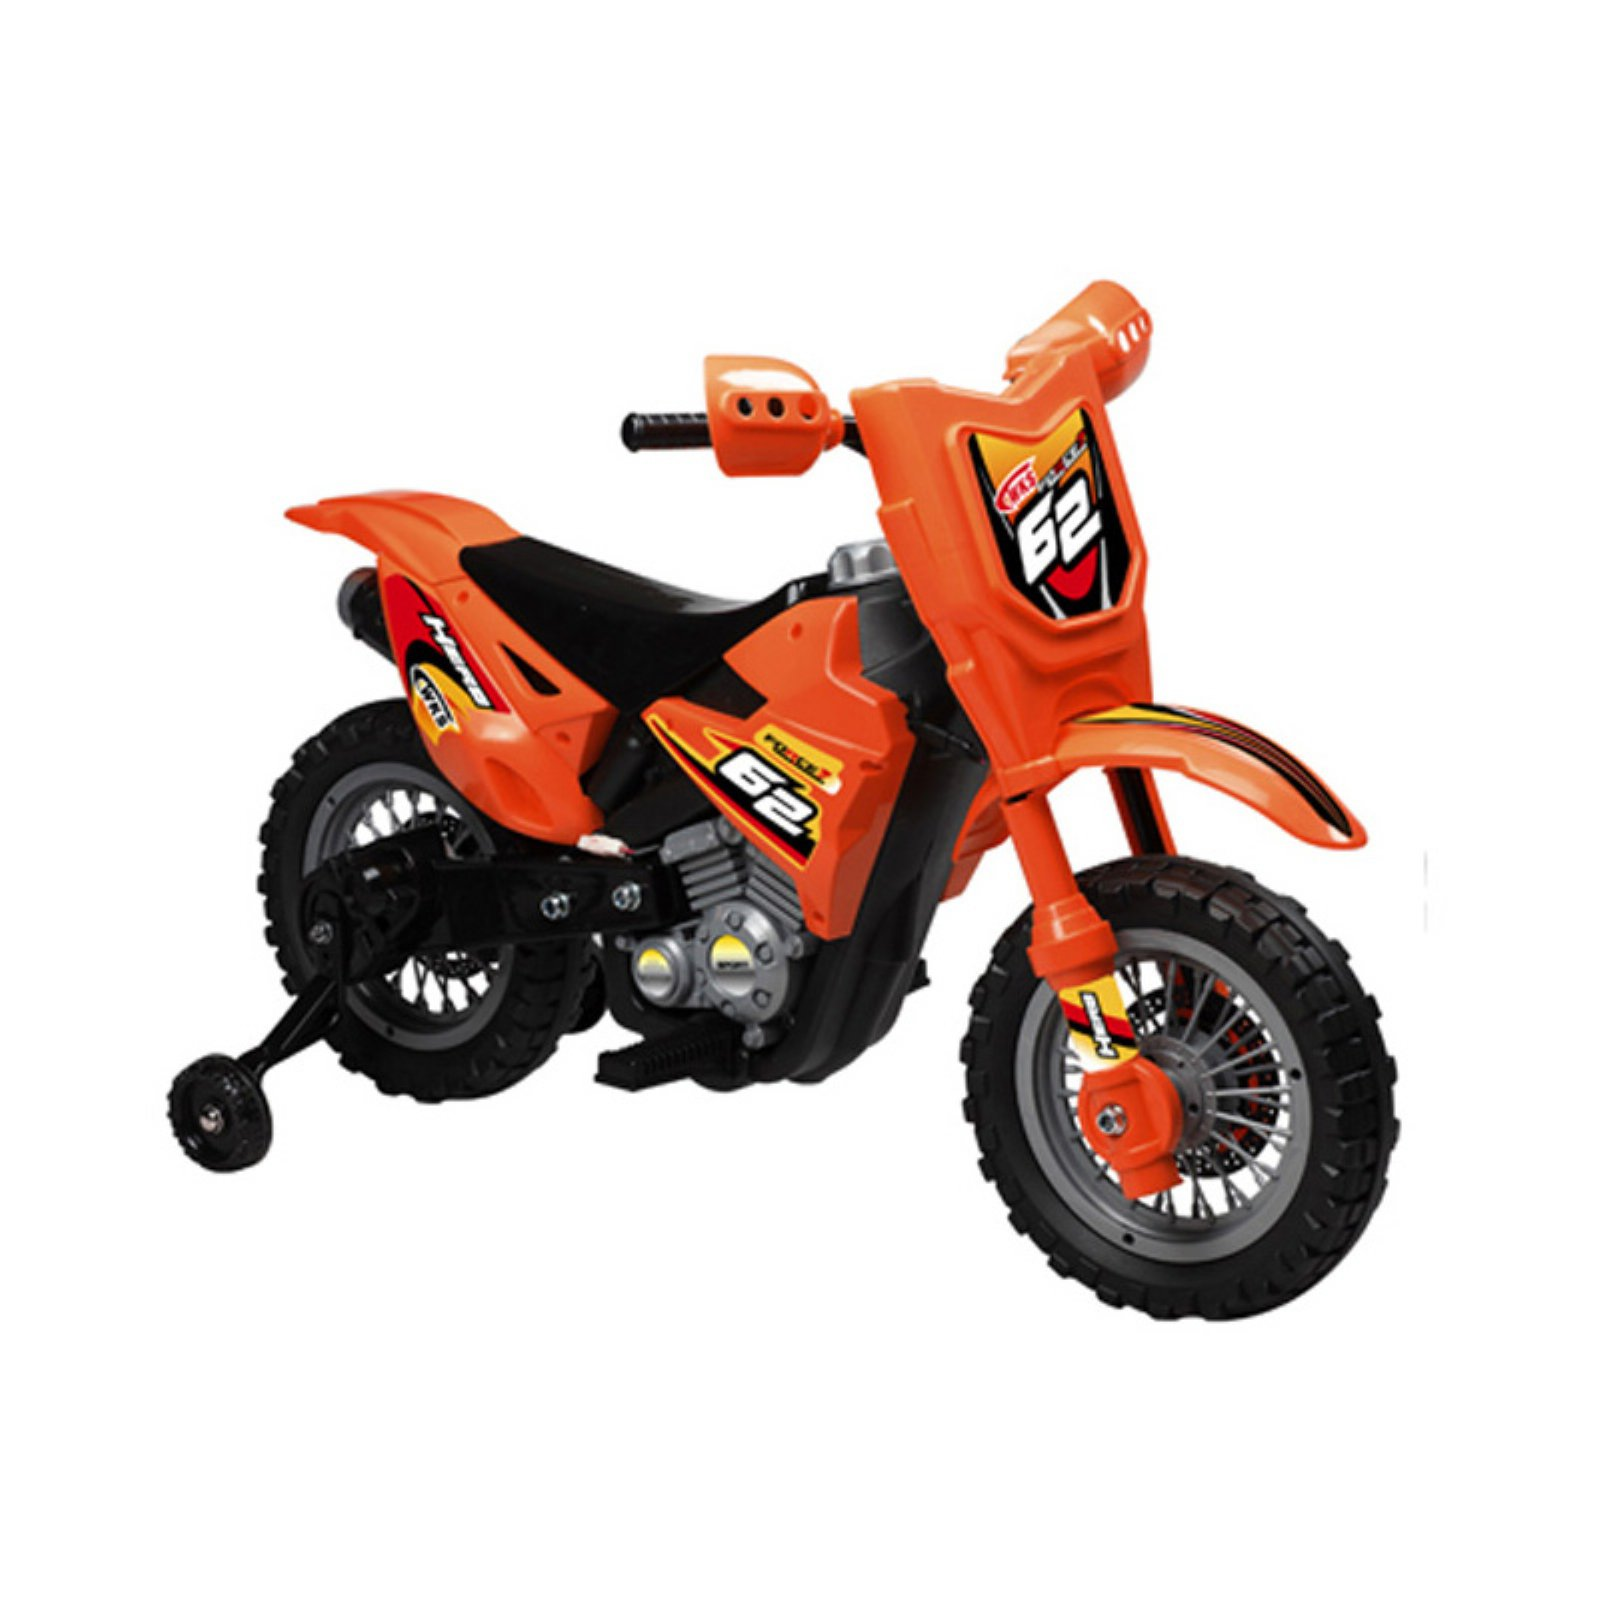 Vroom Rider Dirt Bike Motorcycle Battery Powered Riding Toy Red by Overstock